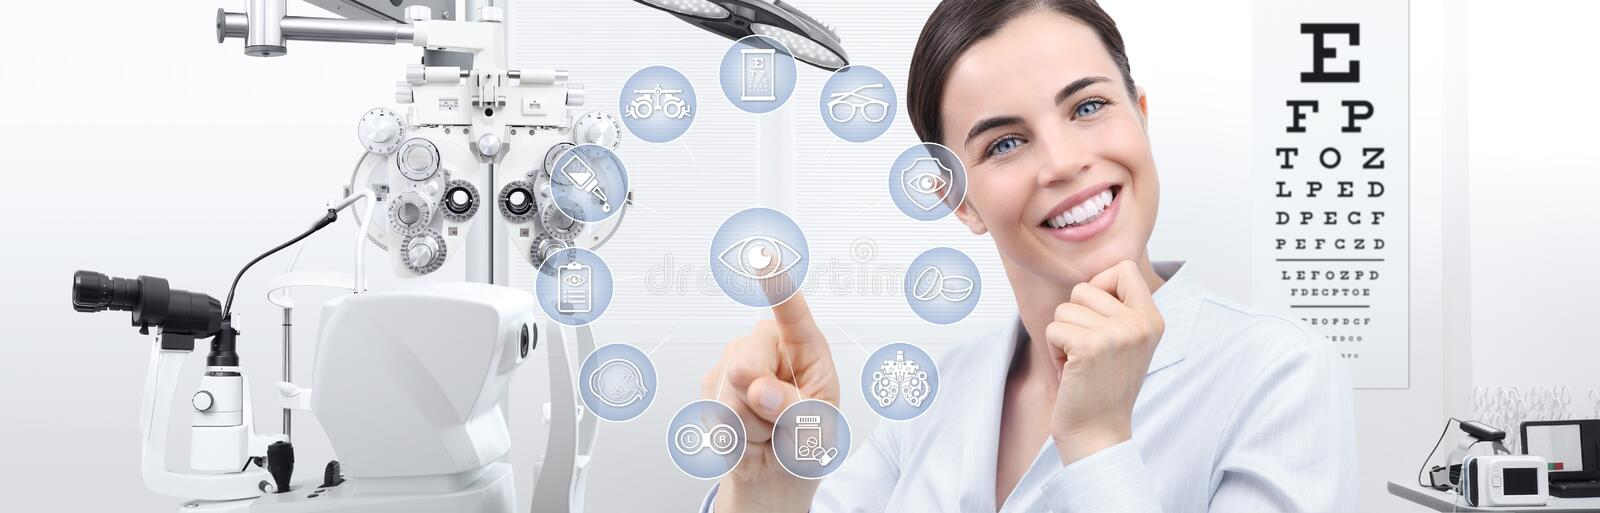 Concept of eye examination, smiling woman touch screen with icons in optometrist office, optician diagnostic equipments. On background stock photography